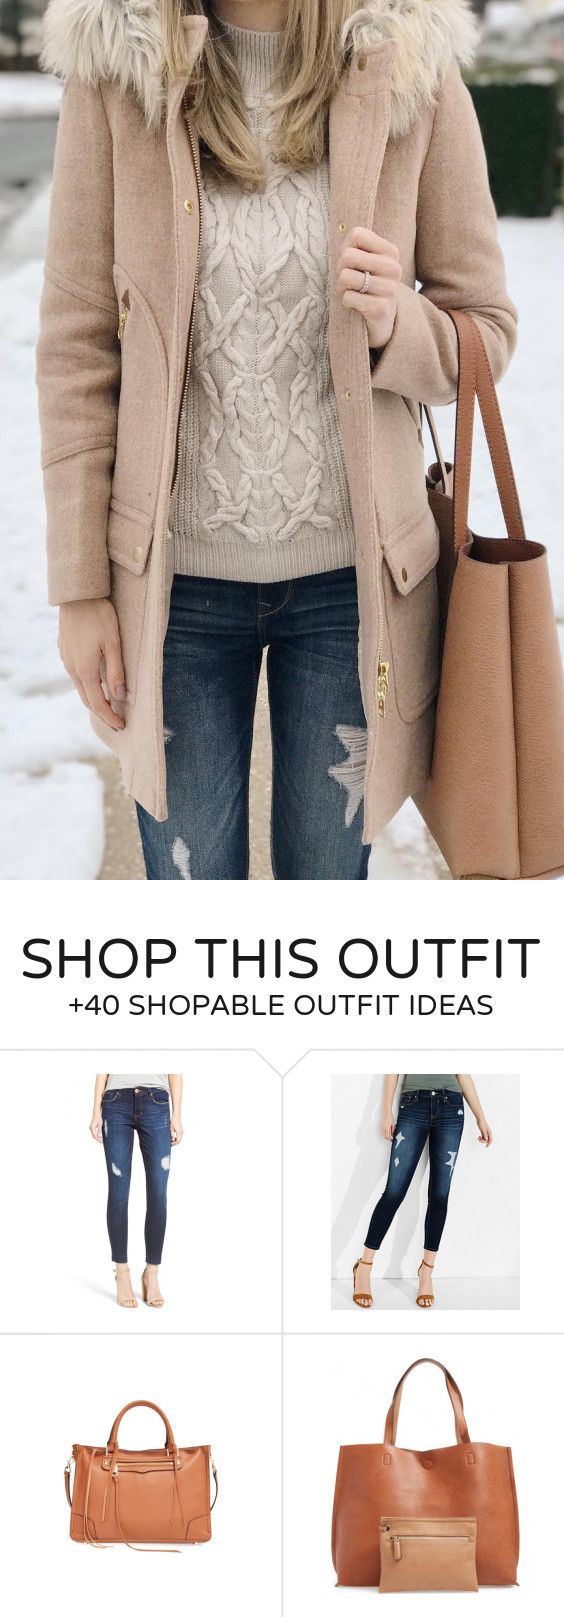 #winter #fashion /  Beige Coat / Cream Knit / Camel Tote Bag / Ripped Skinny Jeans